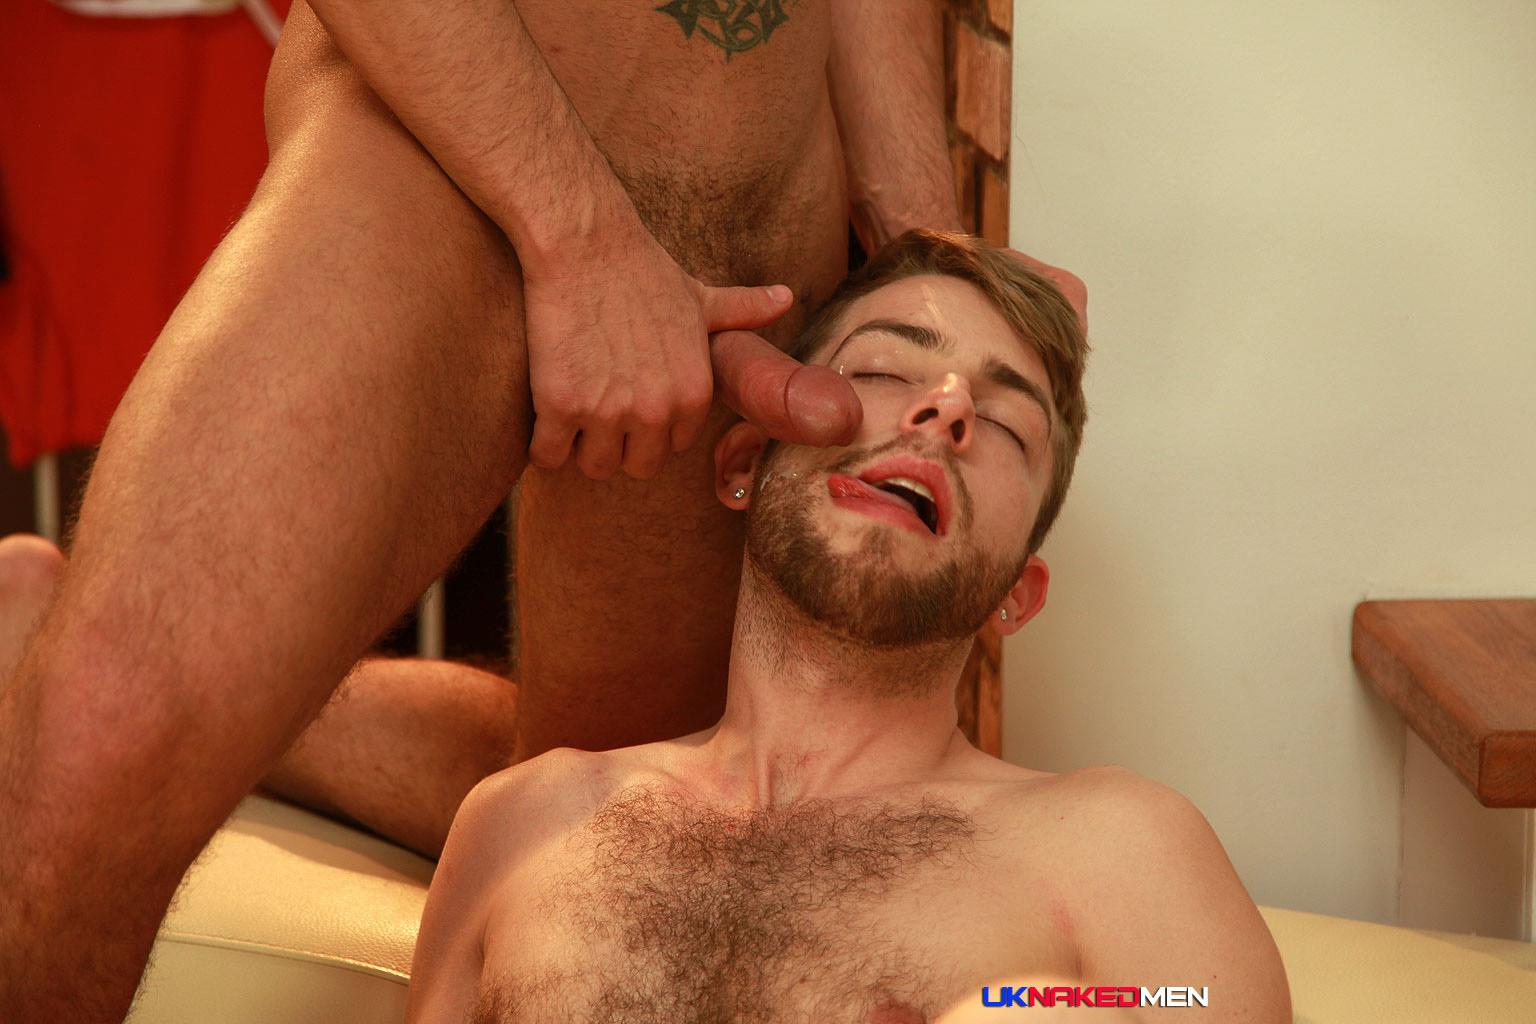 UK-Naked-Men-Killian-James-and-Gabriel-Phoenix-Hairy-Uncut-Cocks-Fucking-Amateur-Gay-Porn-27 UK Naked Men:  Hairy Uncut Hunk Killian James Fucking Gabriel Phoenix